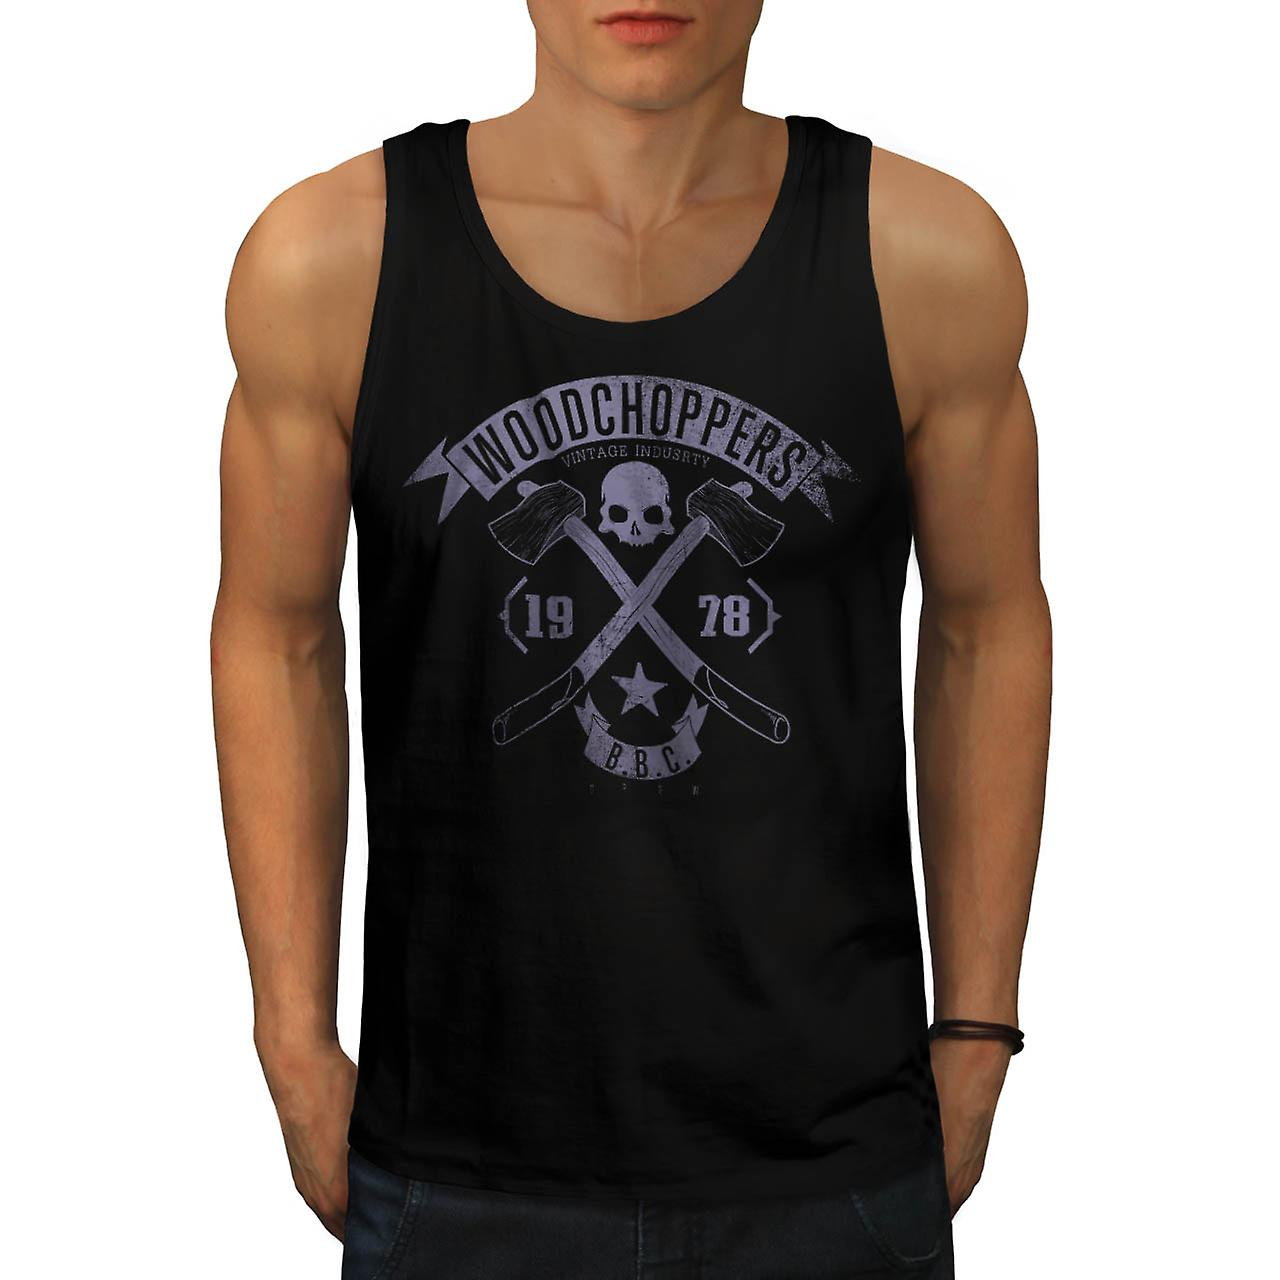 Wood Chopper Company Vintage Men Black Tank Top | Wellcoda